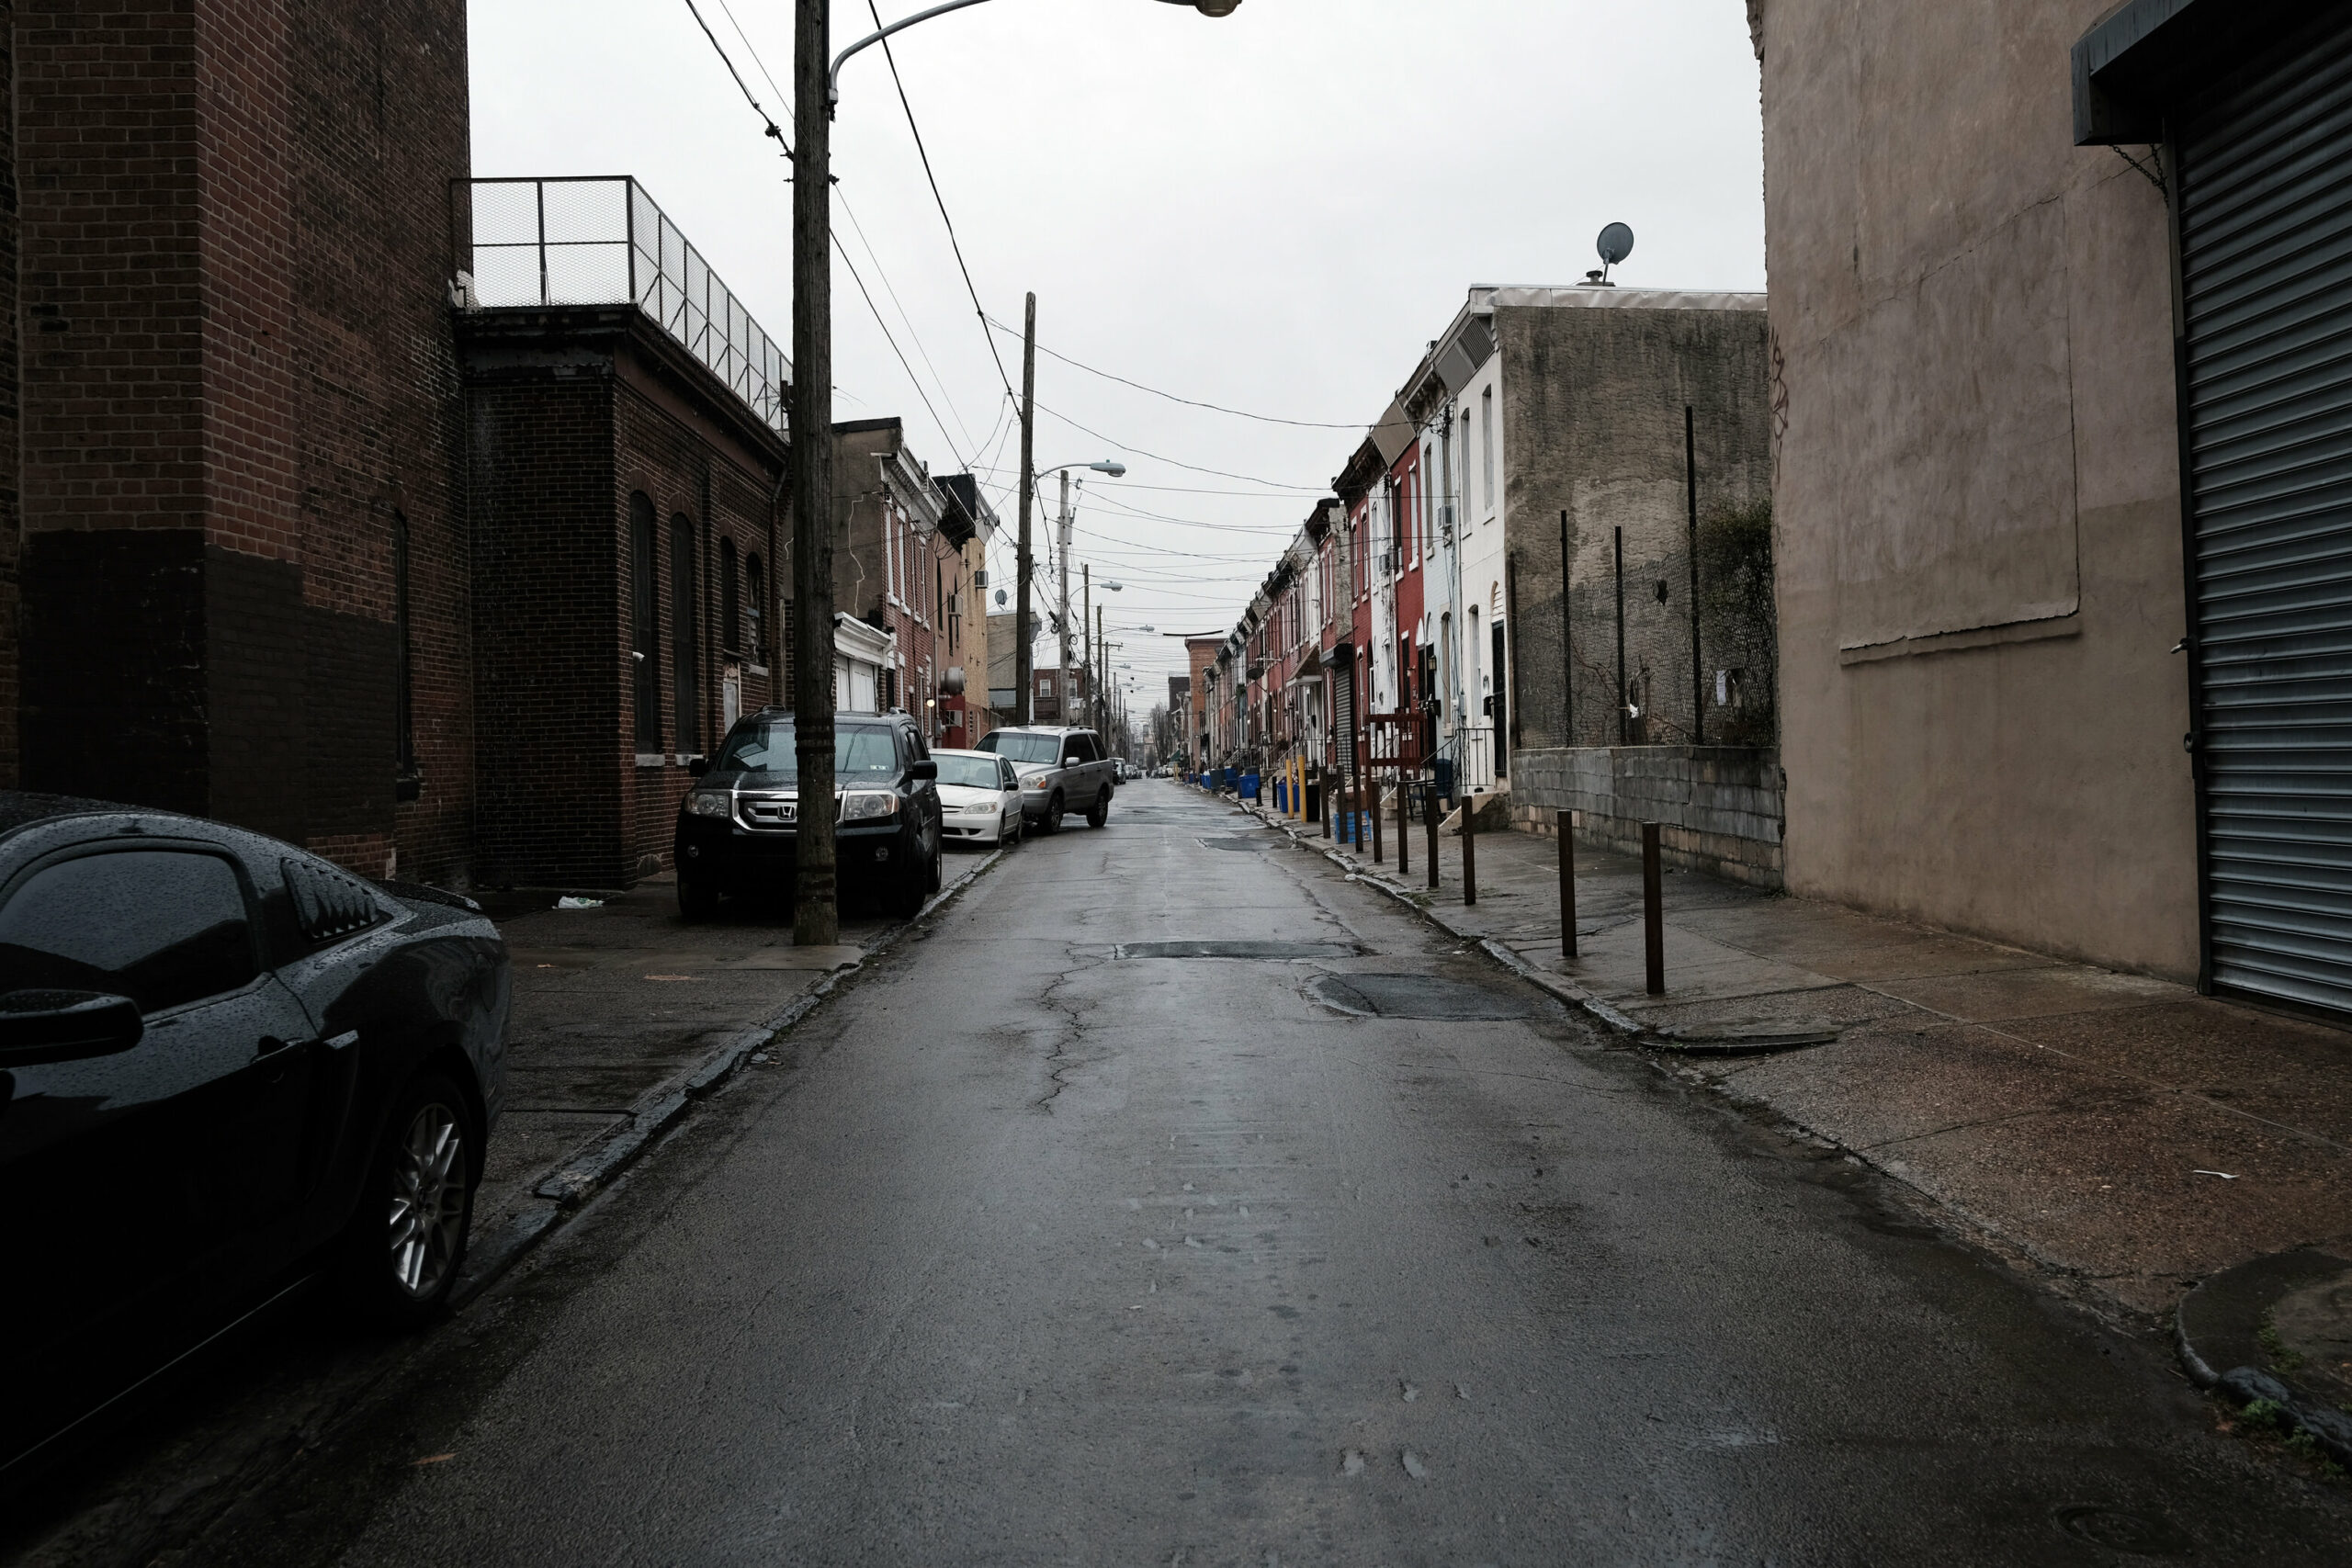 Philadelphia Minister Aids Community Hard-Hit By COVID-19, Poverty And Addiction